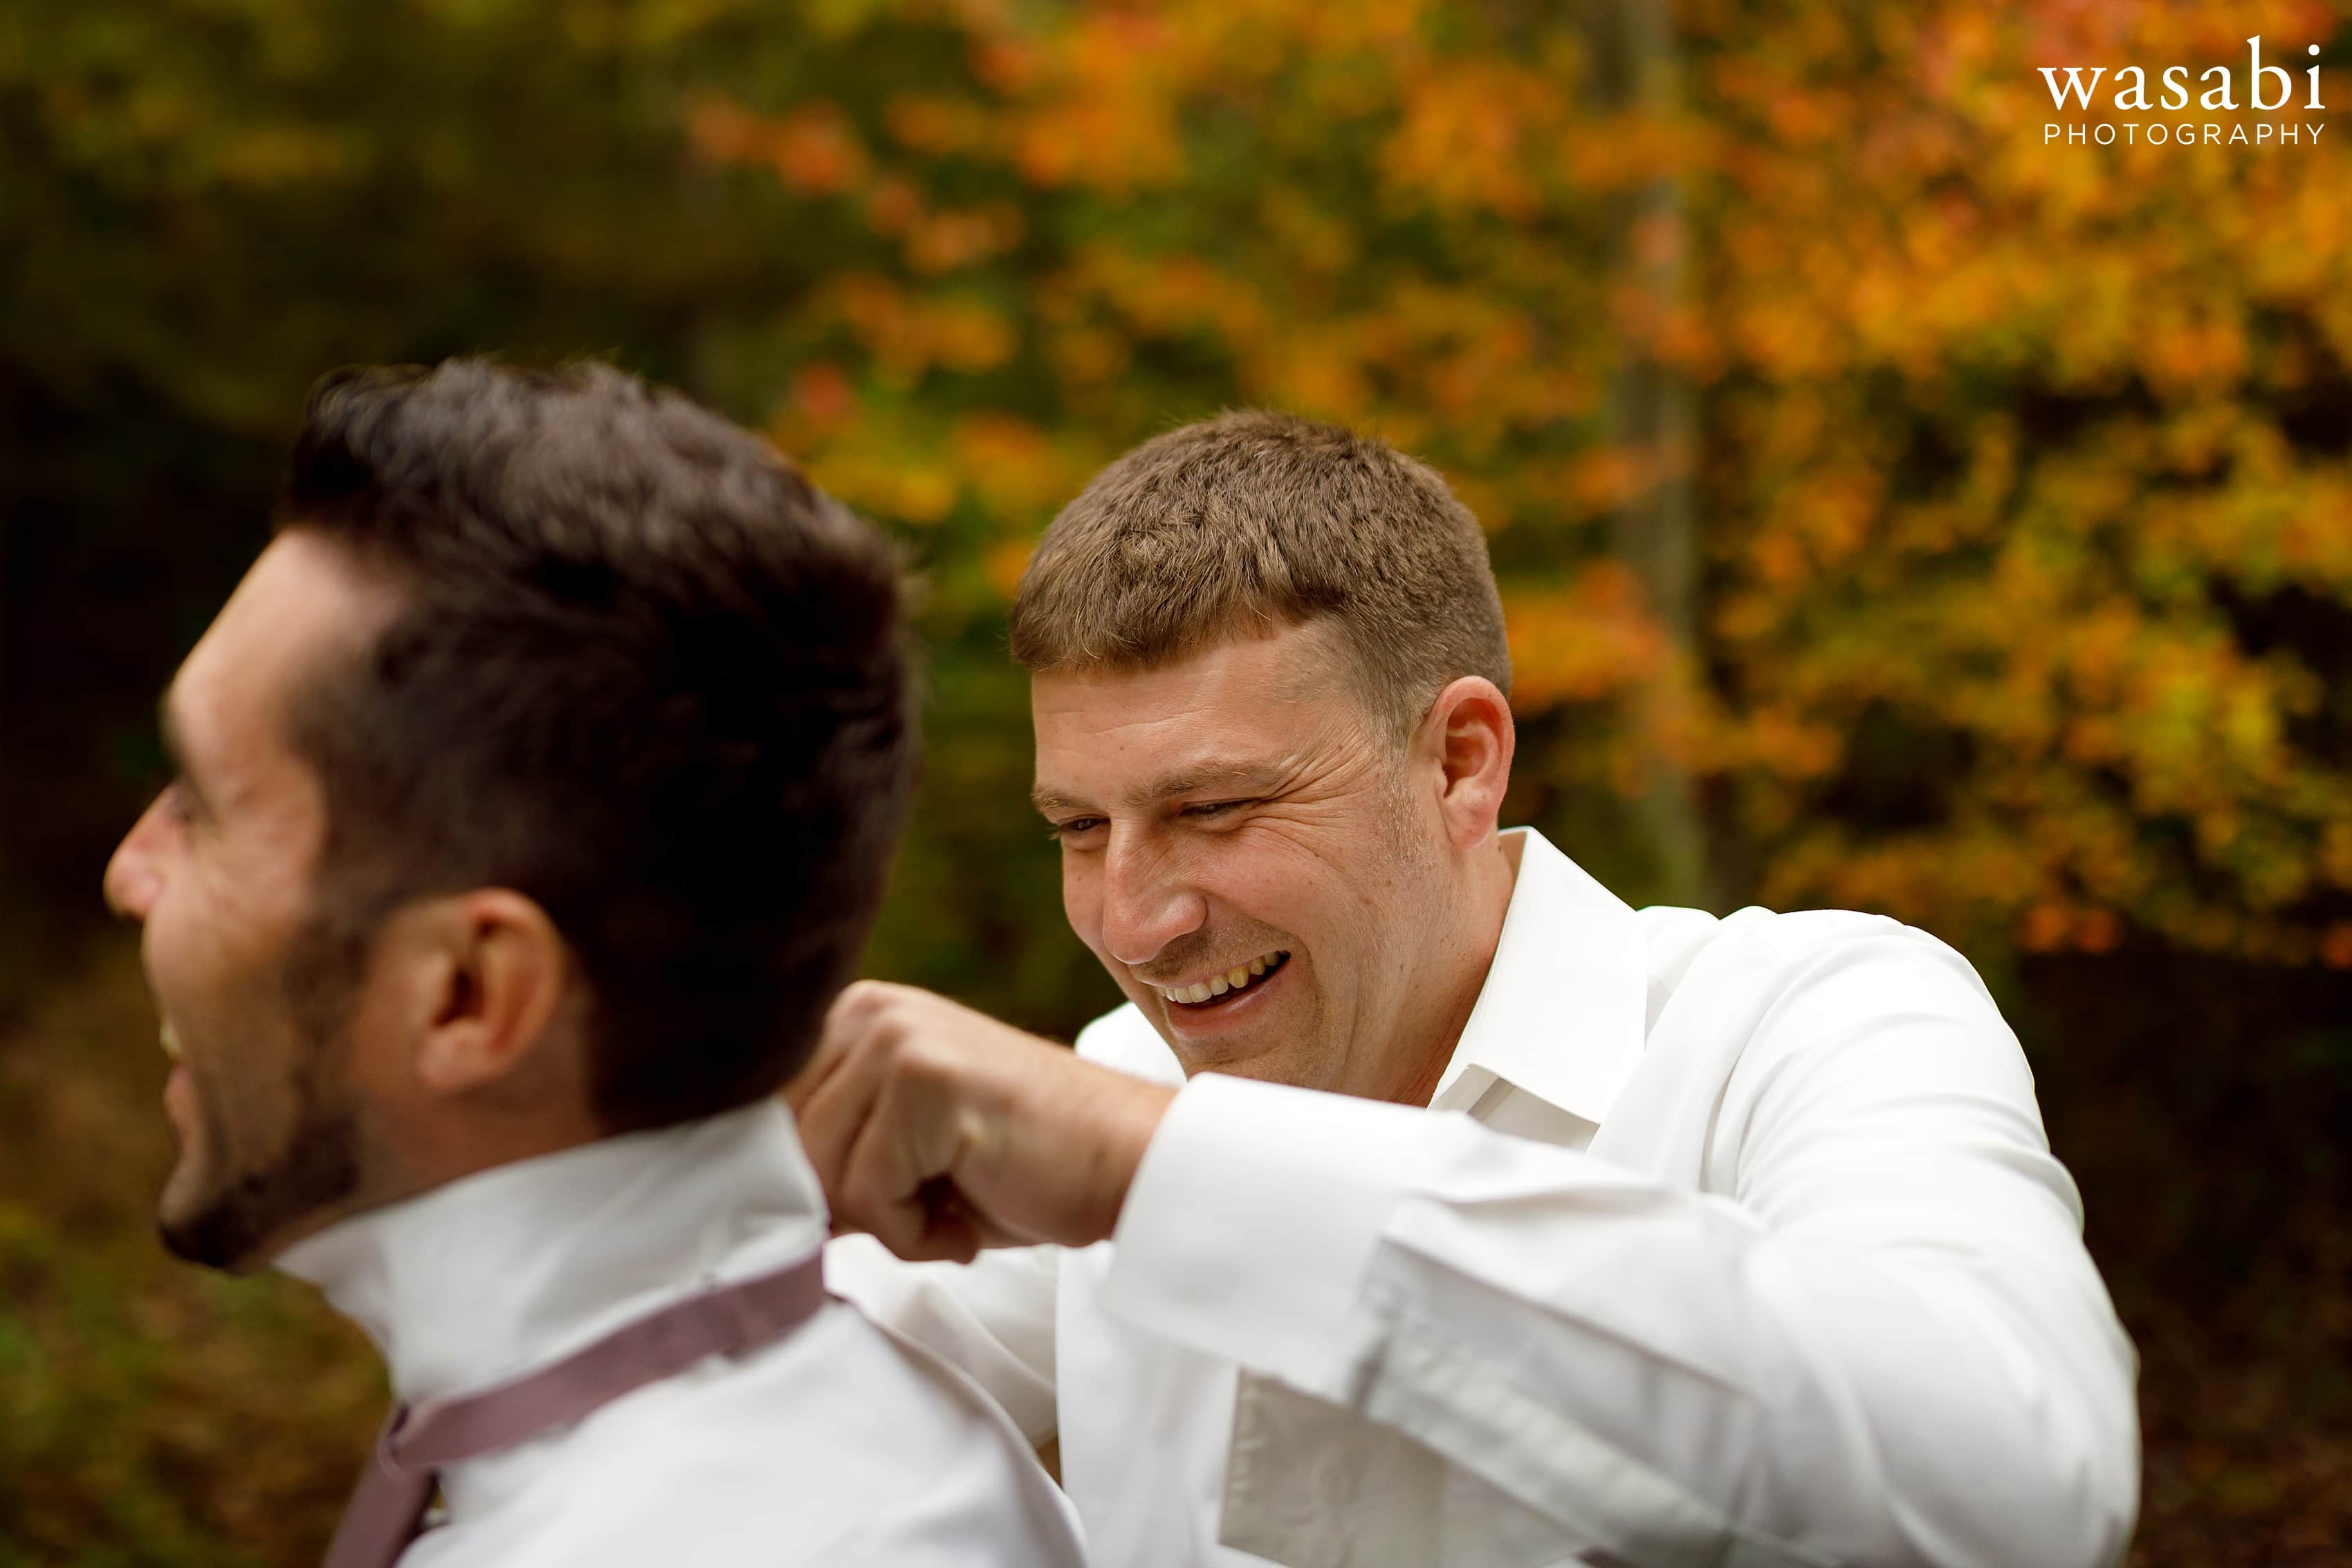 Groom and groomsman adjust ties while getting ready for wedding at Buck's Run Golf Club in Mount Pleasant, Michigan.